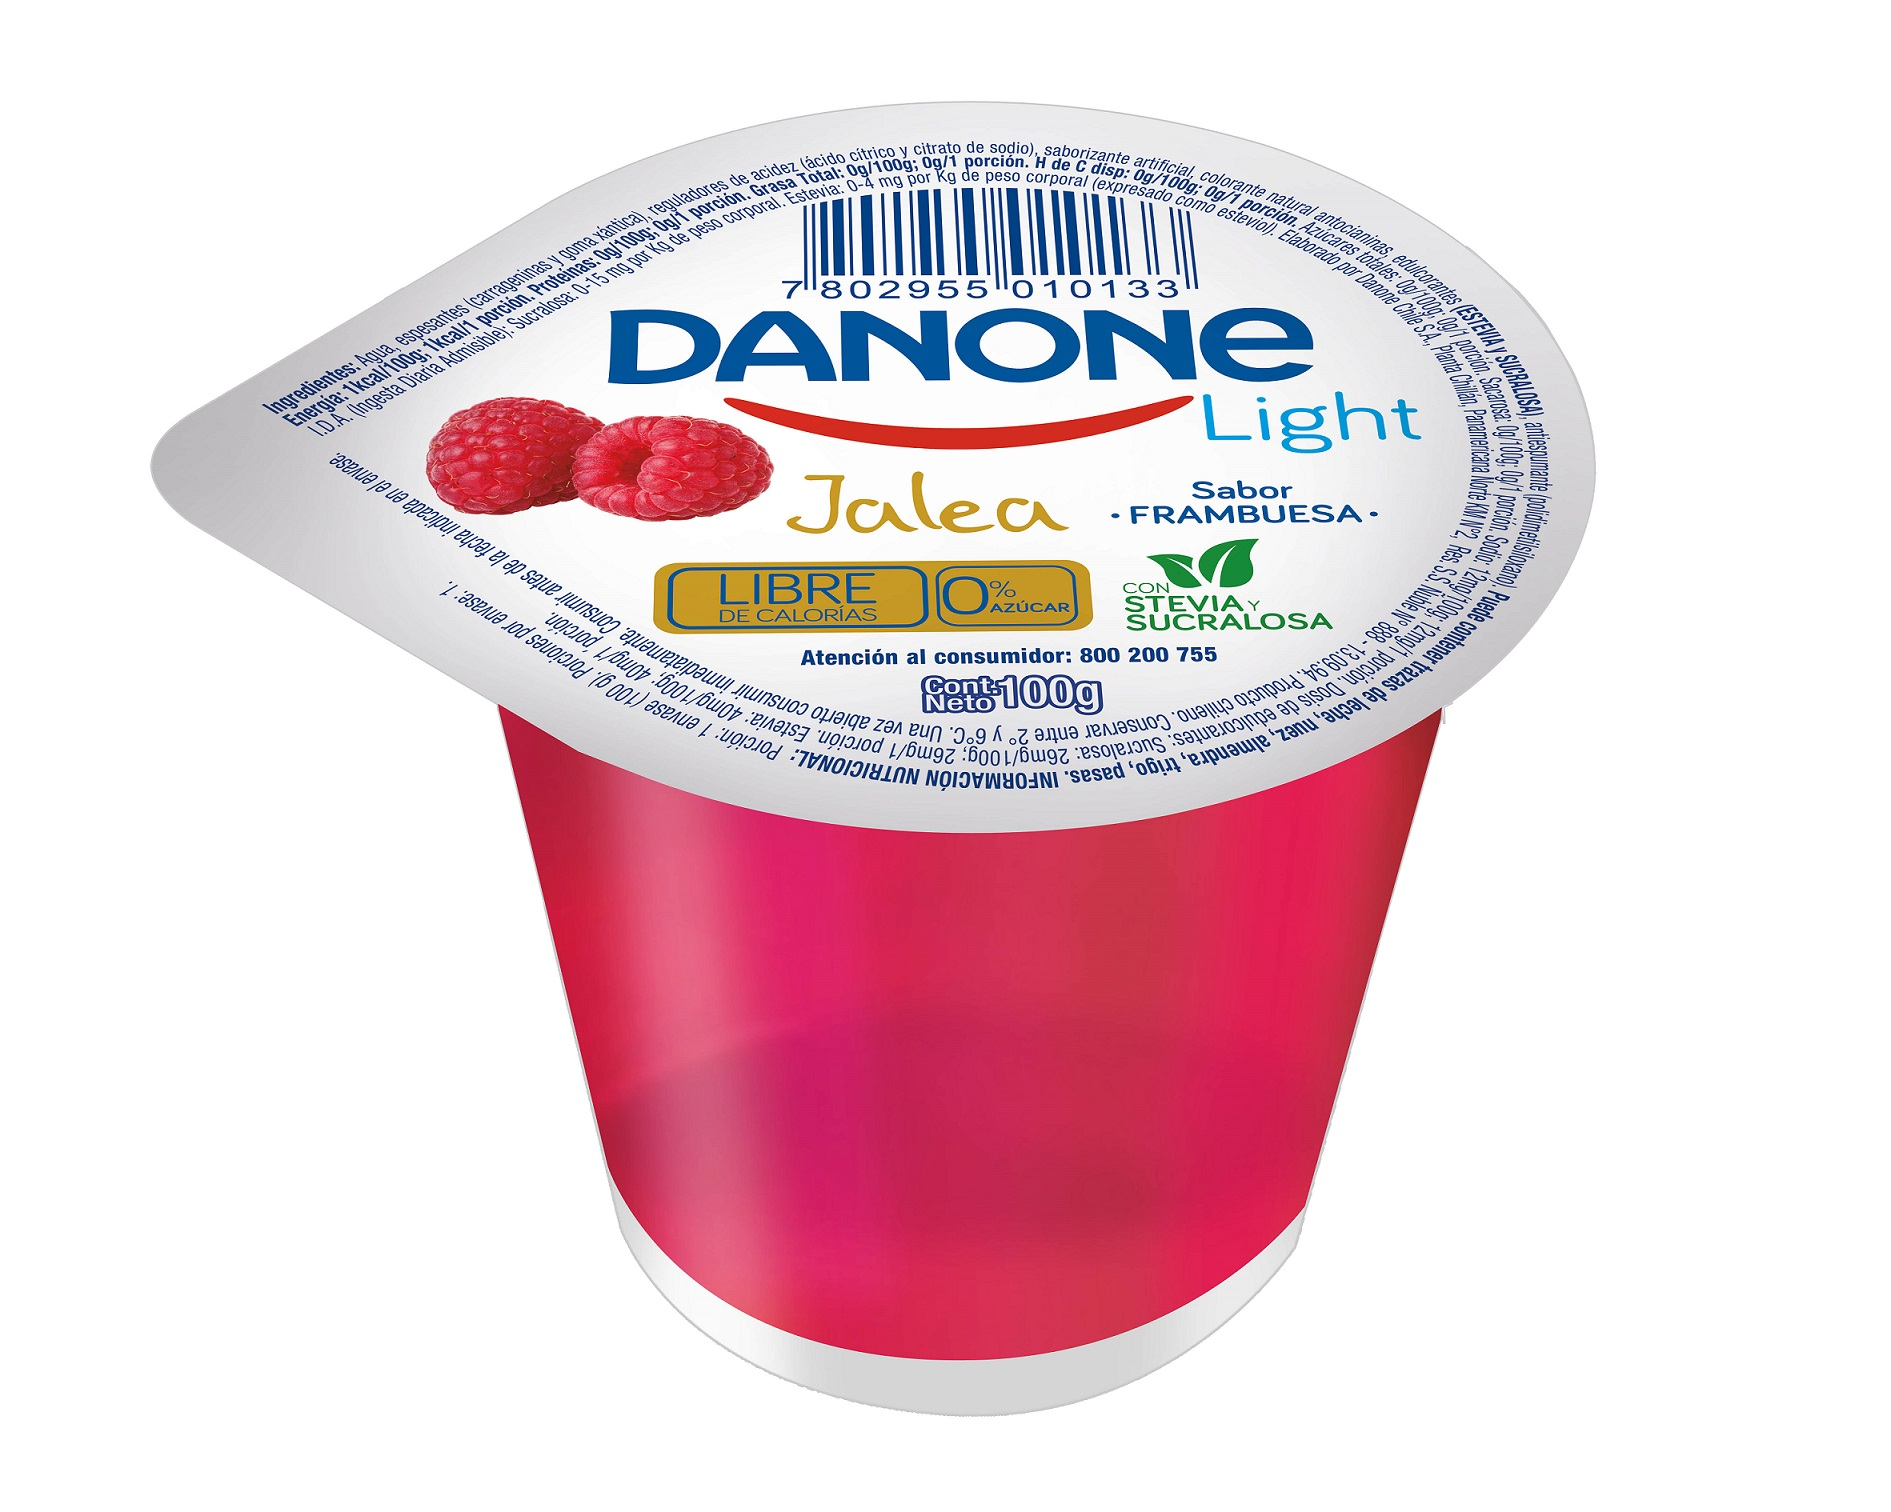 Jalea Frambuesa Danone Light 100g